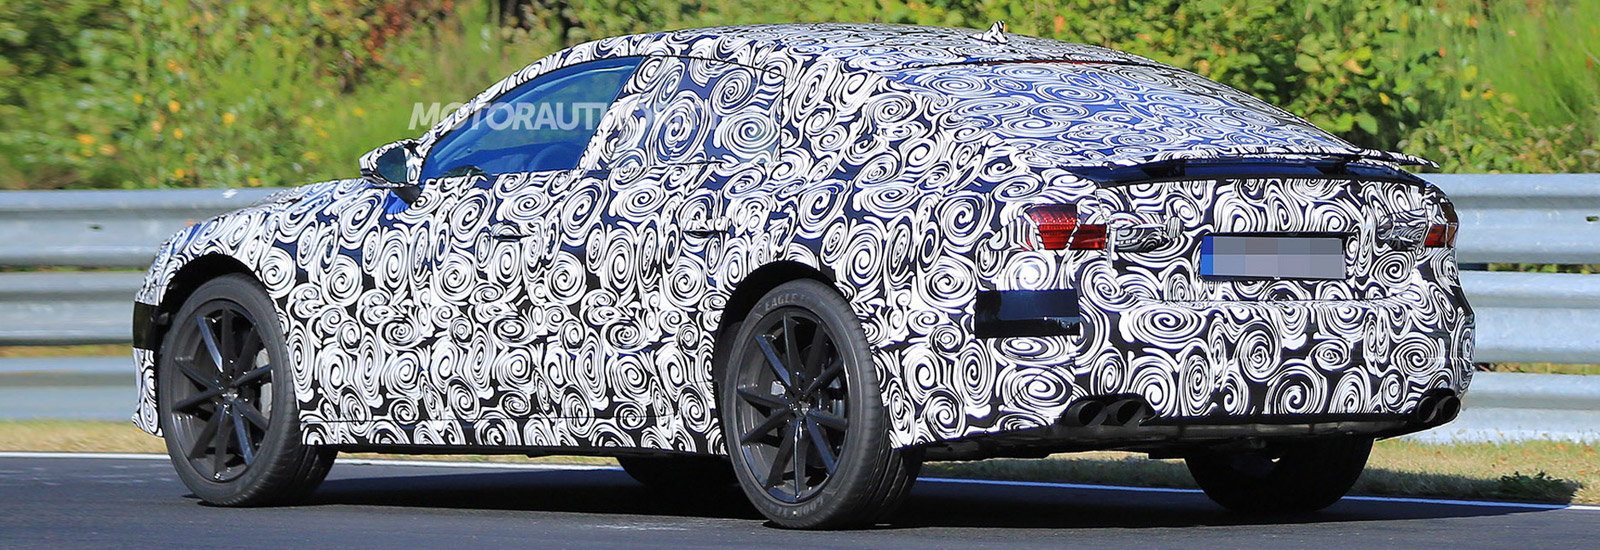 2018 audi s7. unique audi fans of characterful burbling v8s will be happy to hear the rs7 boast  a revised version current caru0027s eightcylinder unit tuned produce more  on 2018 audi s7